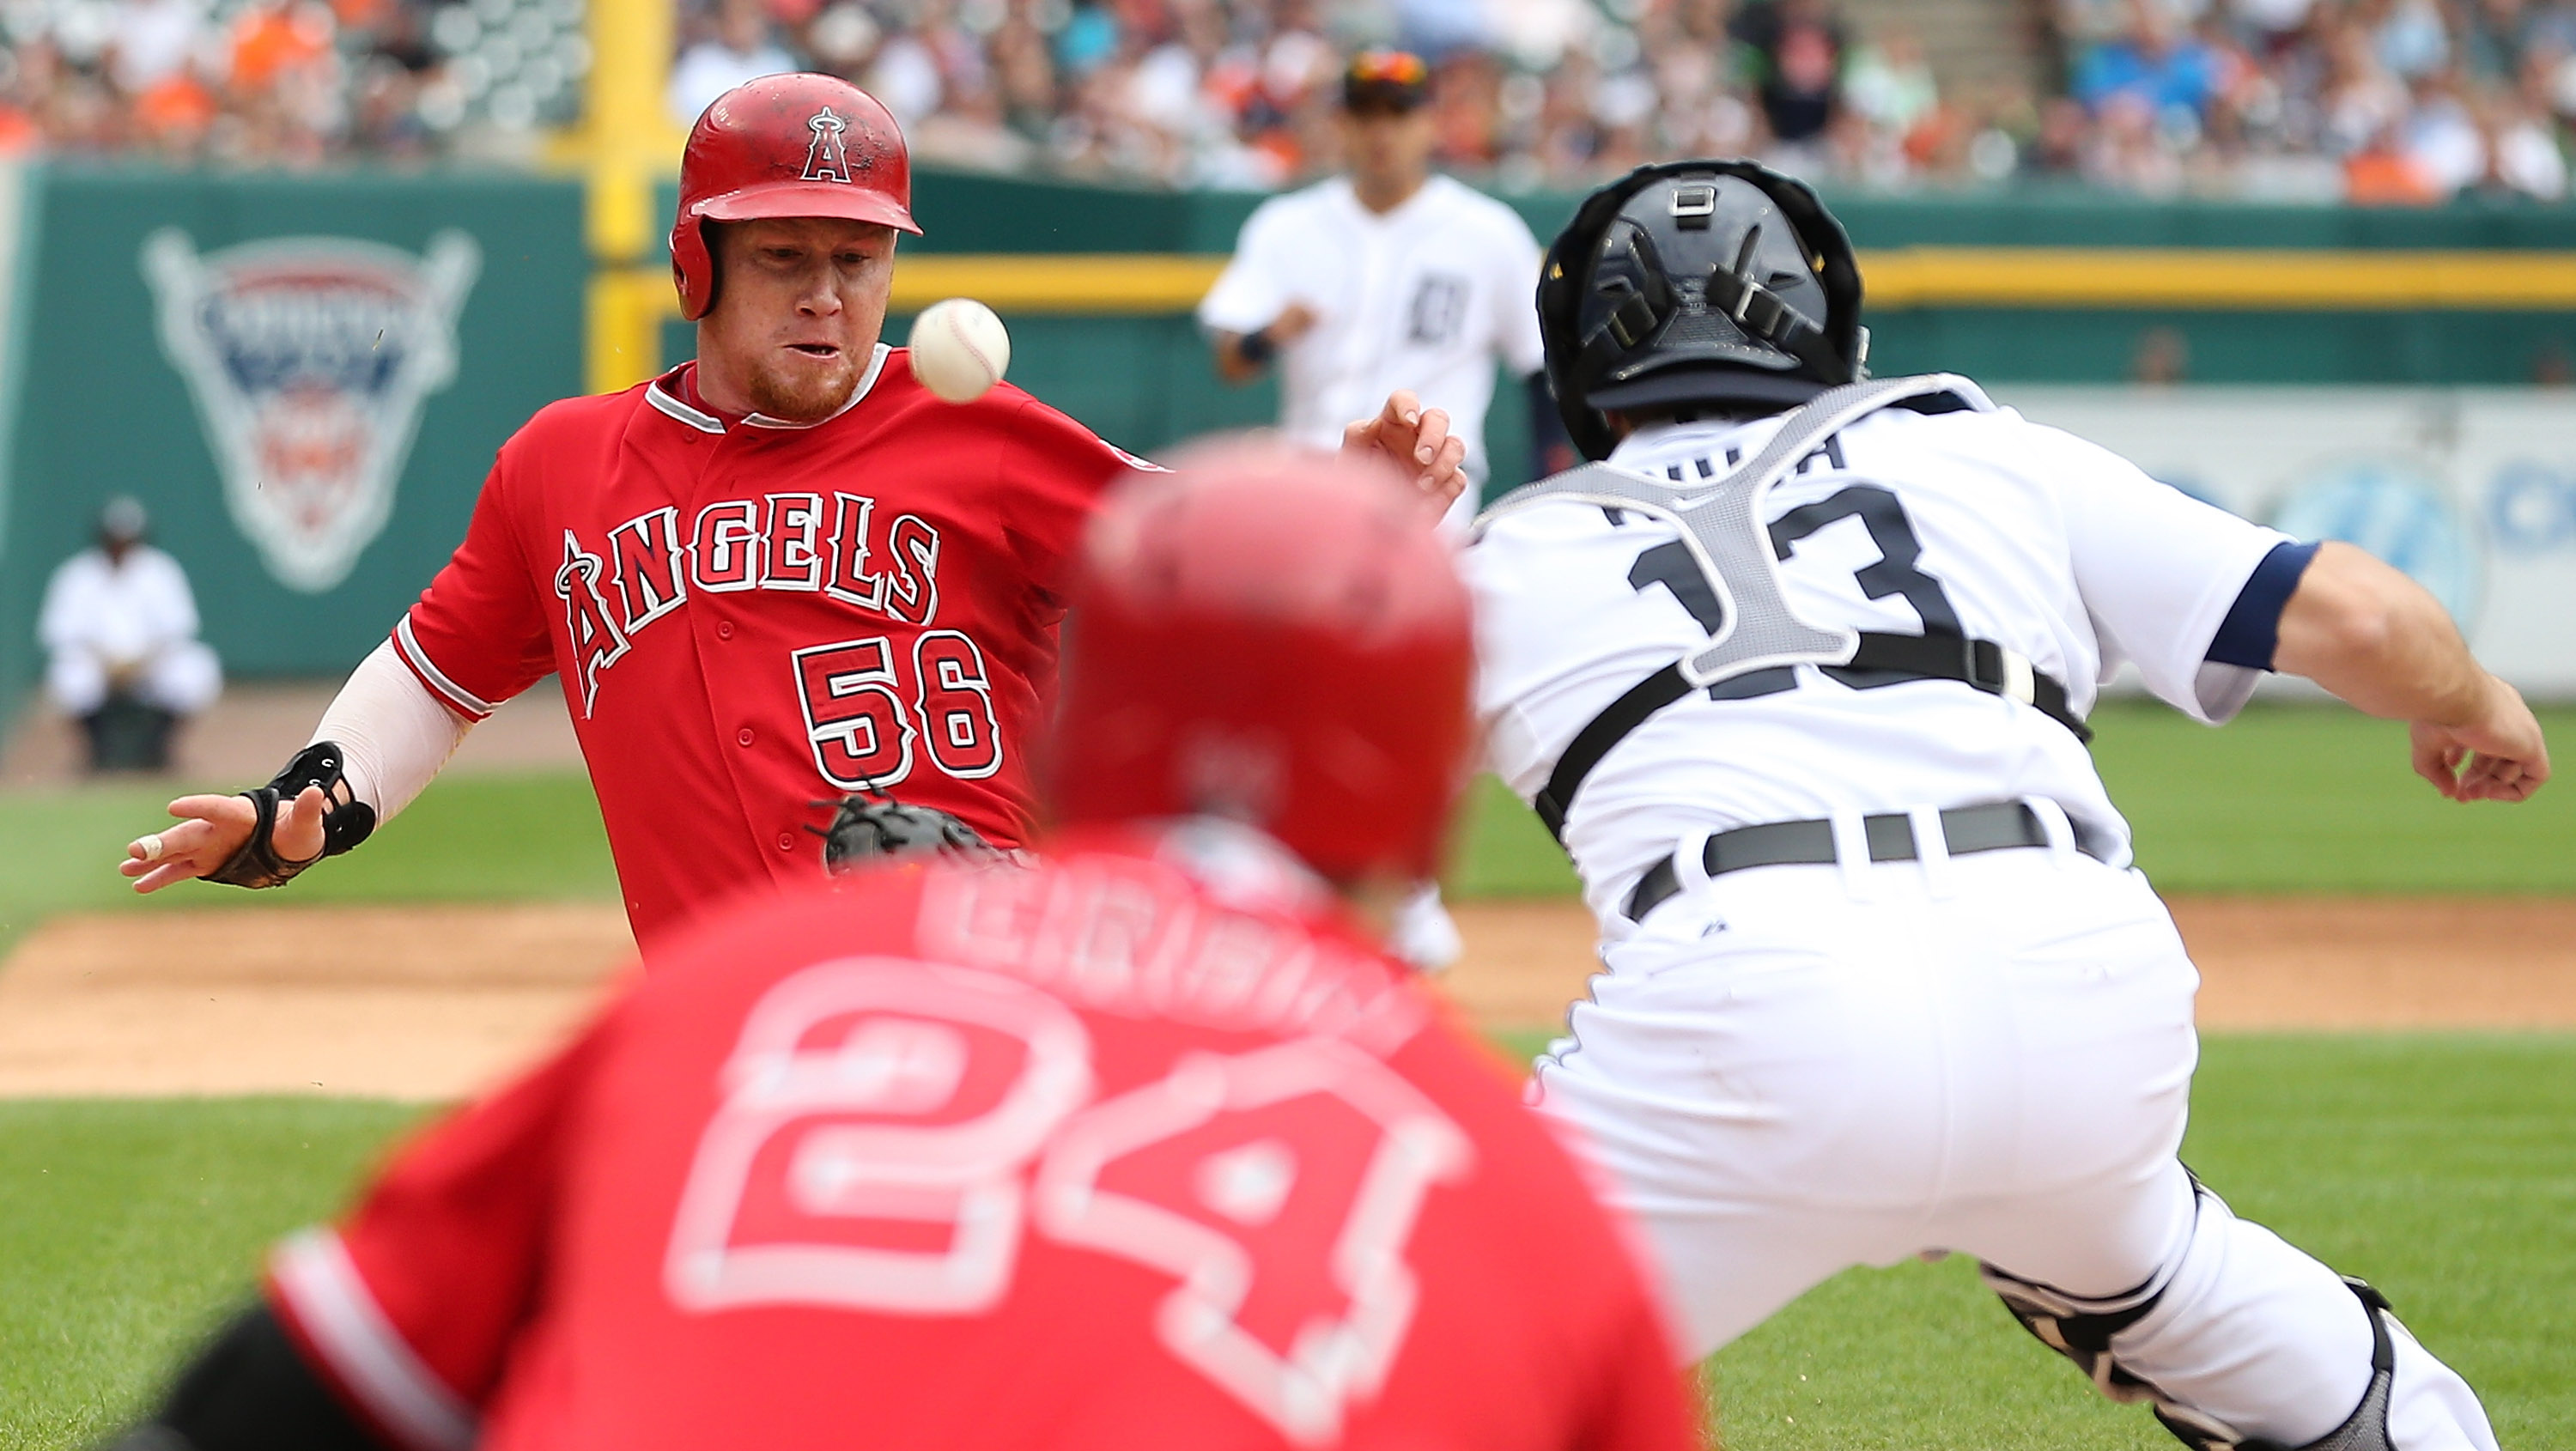 DETROIT, MI - AUGUST 27: Kole Calhoun #56 of the Los Angeles Angels scores on the single to left field by Albert Pujols #5 (not in photo) as Alex Avila #13 of the Detroit Tigers attempts to put on the tag during the sixth inning of the game on August 27, 2015 at Comerica Park in Detroit, Michigan. (Photo by Leon Halip/Getty Images)